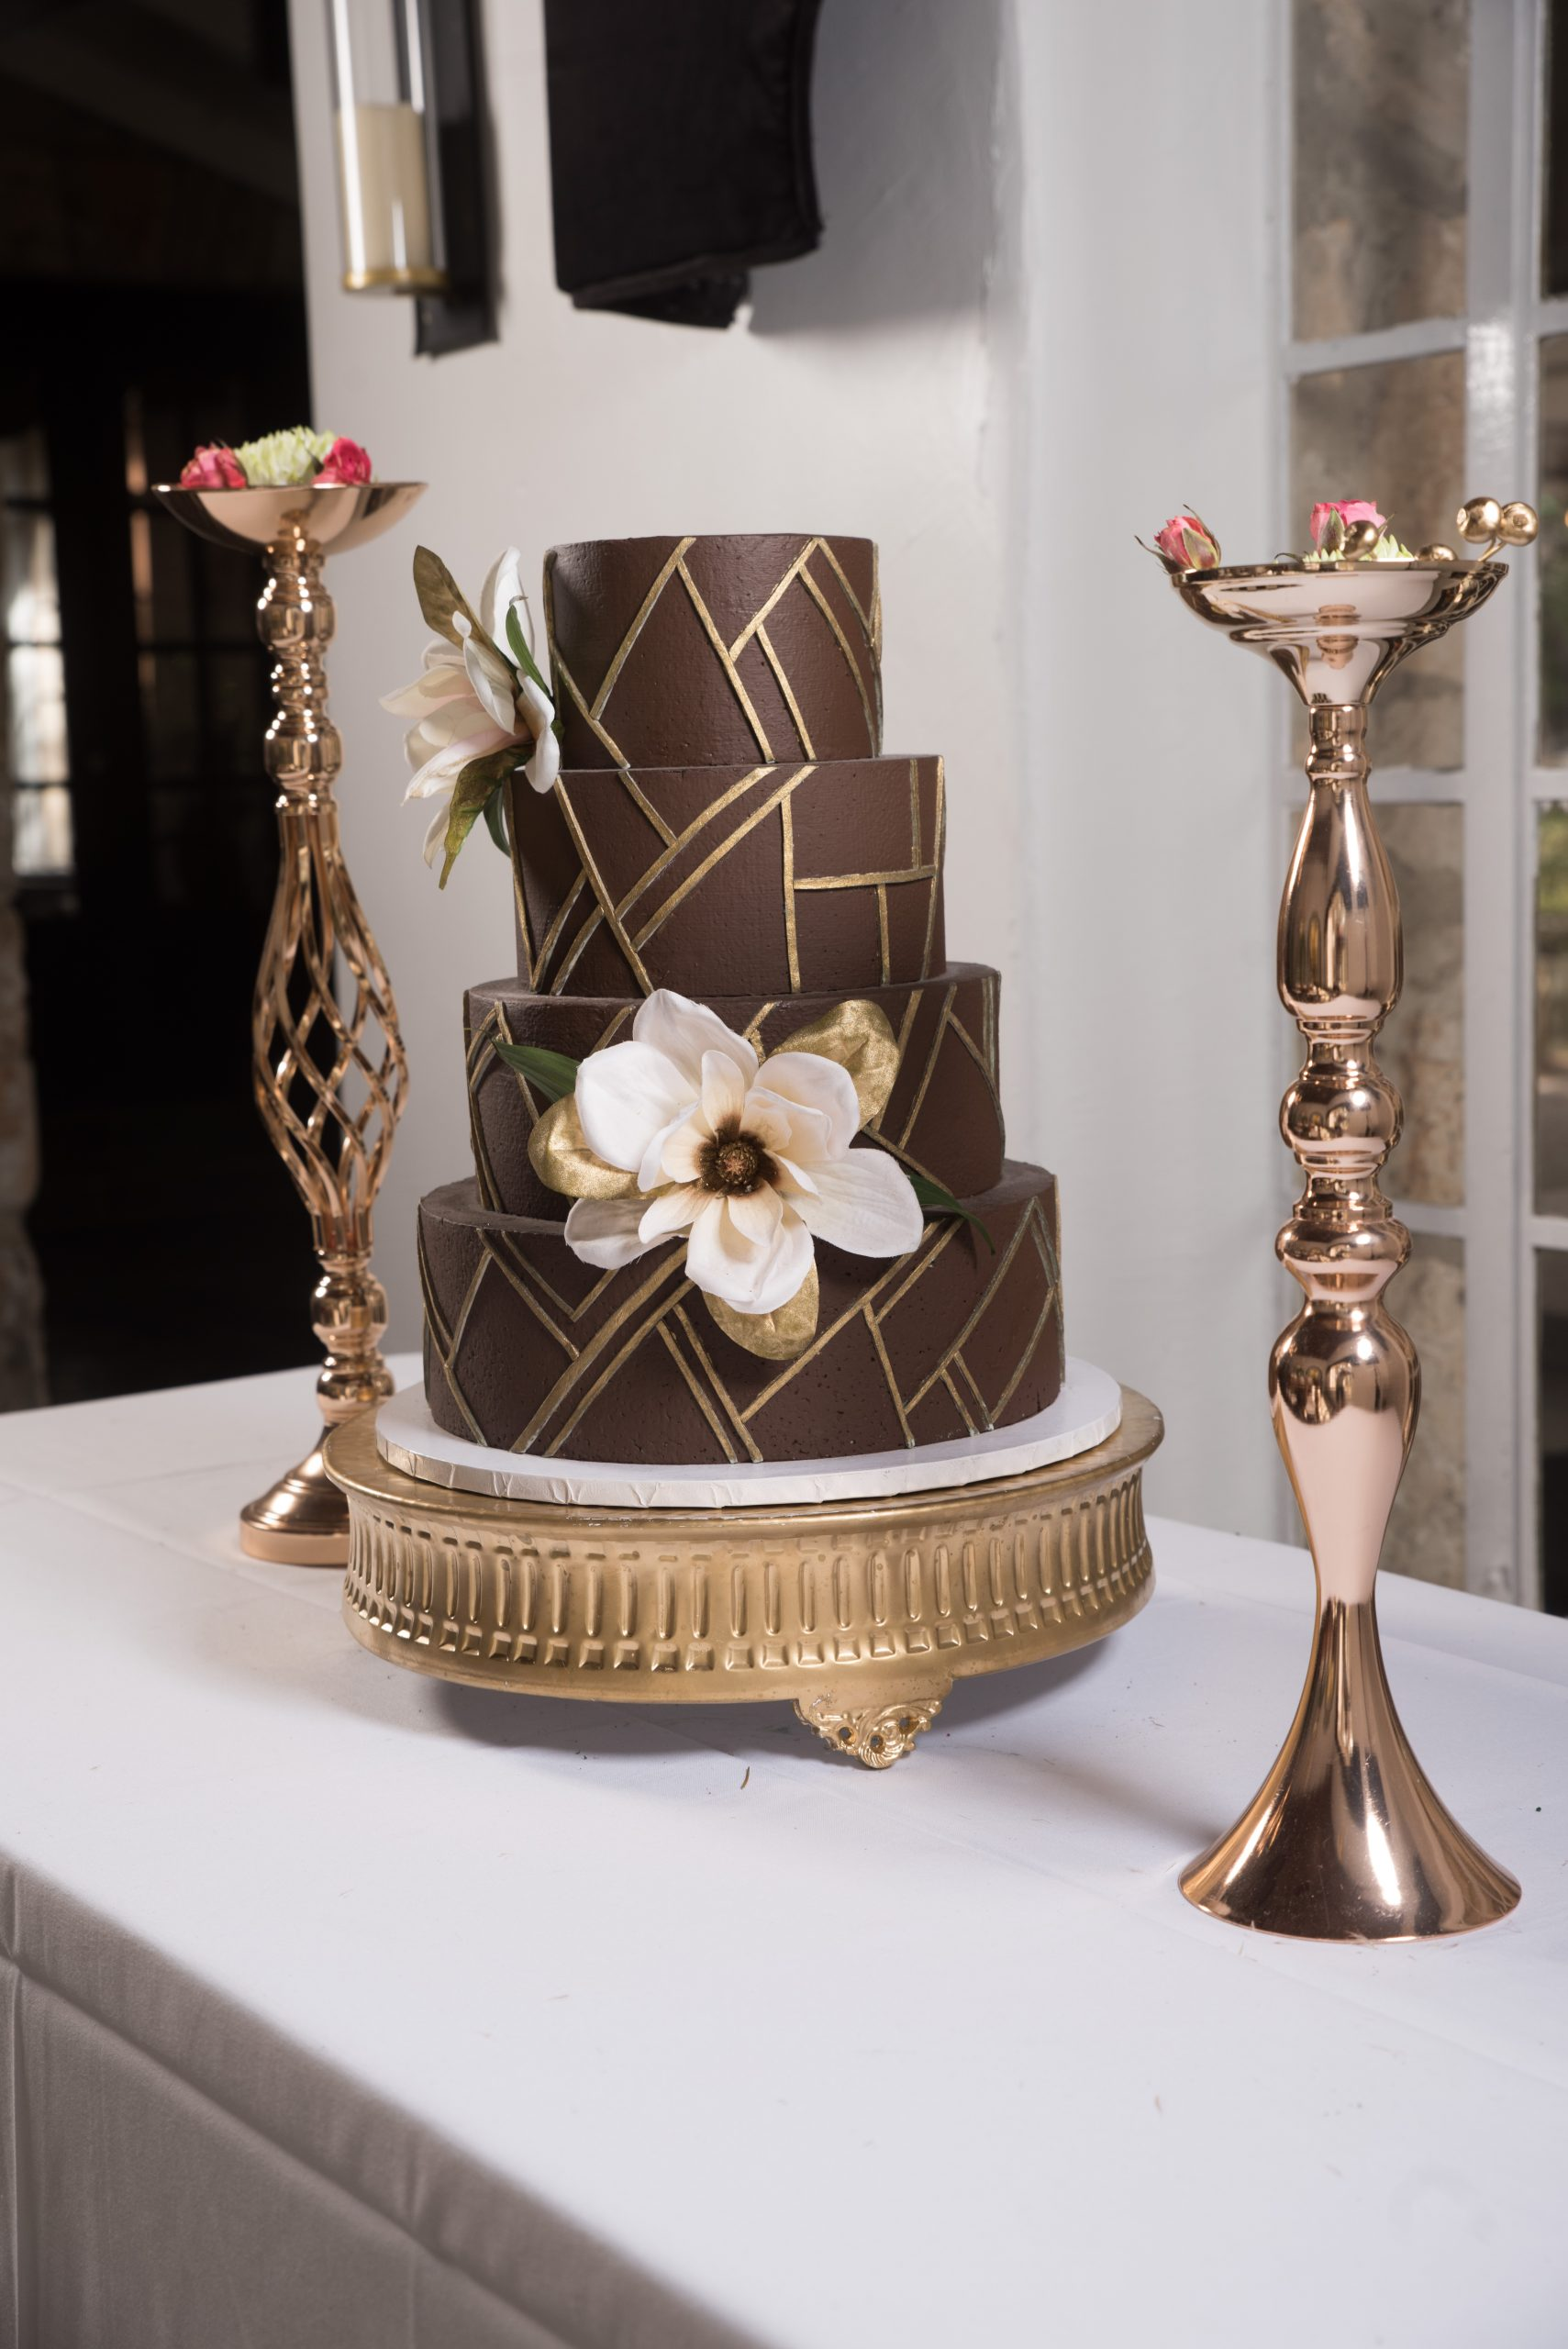 brown and gold wedding cake at Tuscany venue